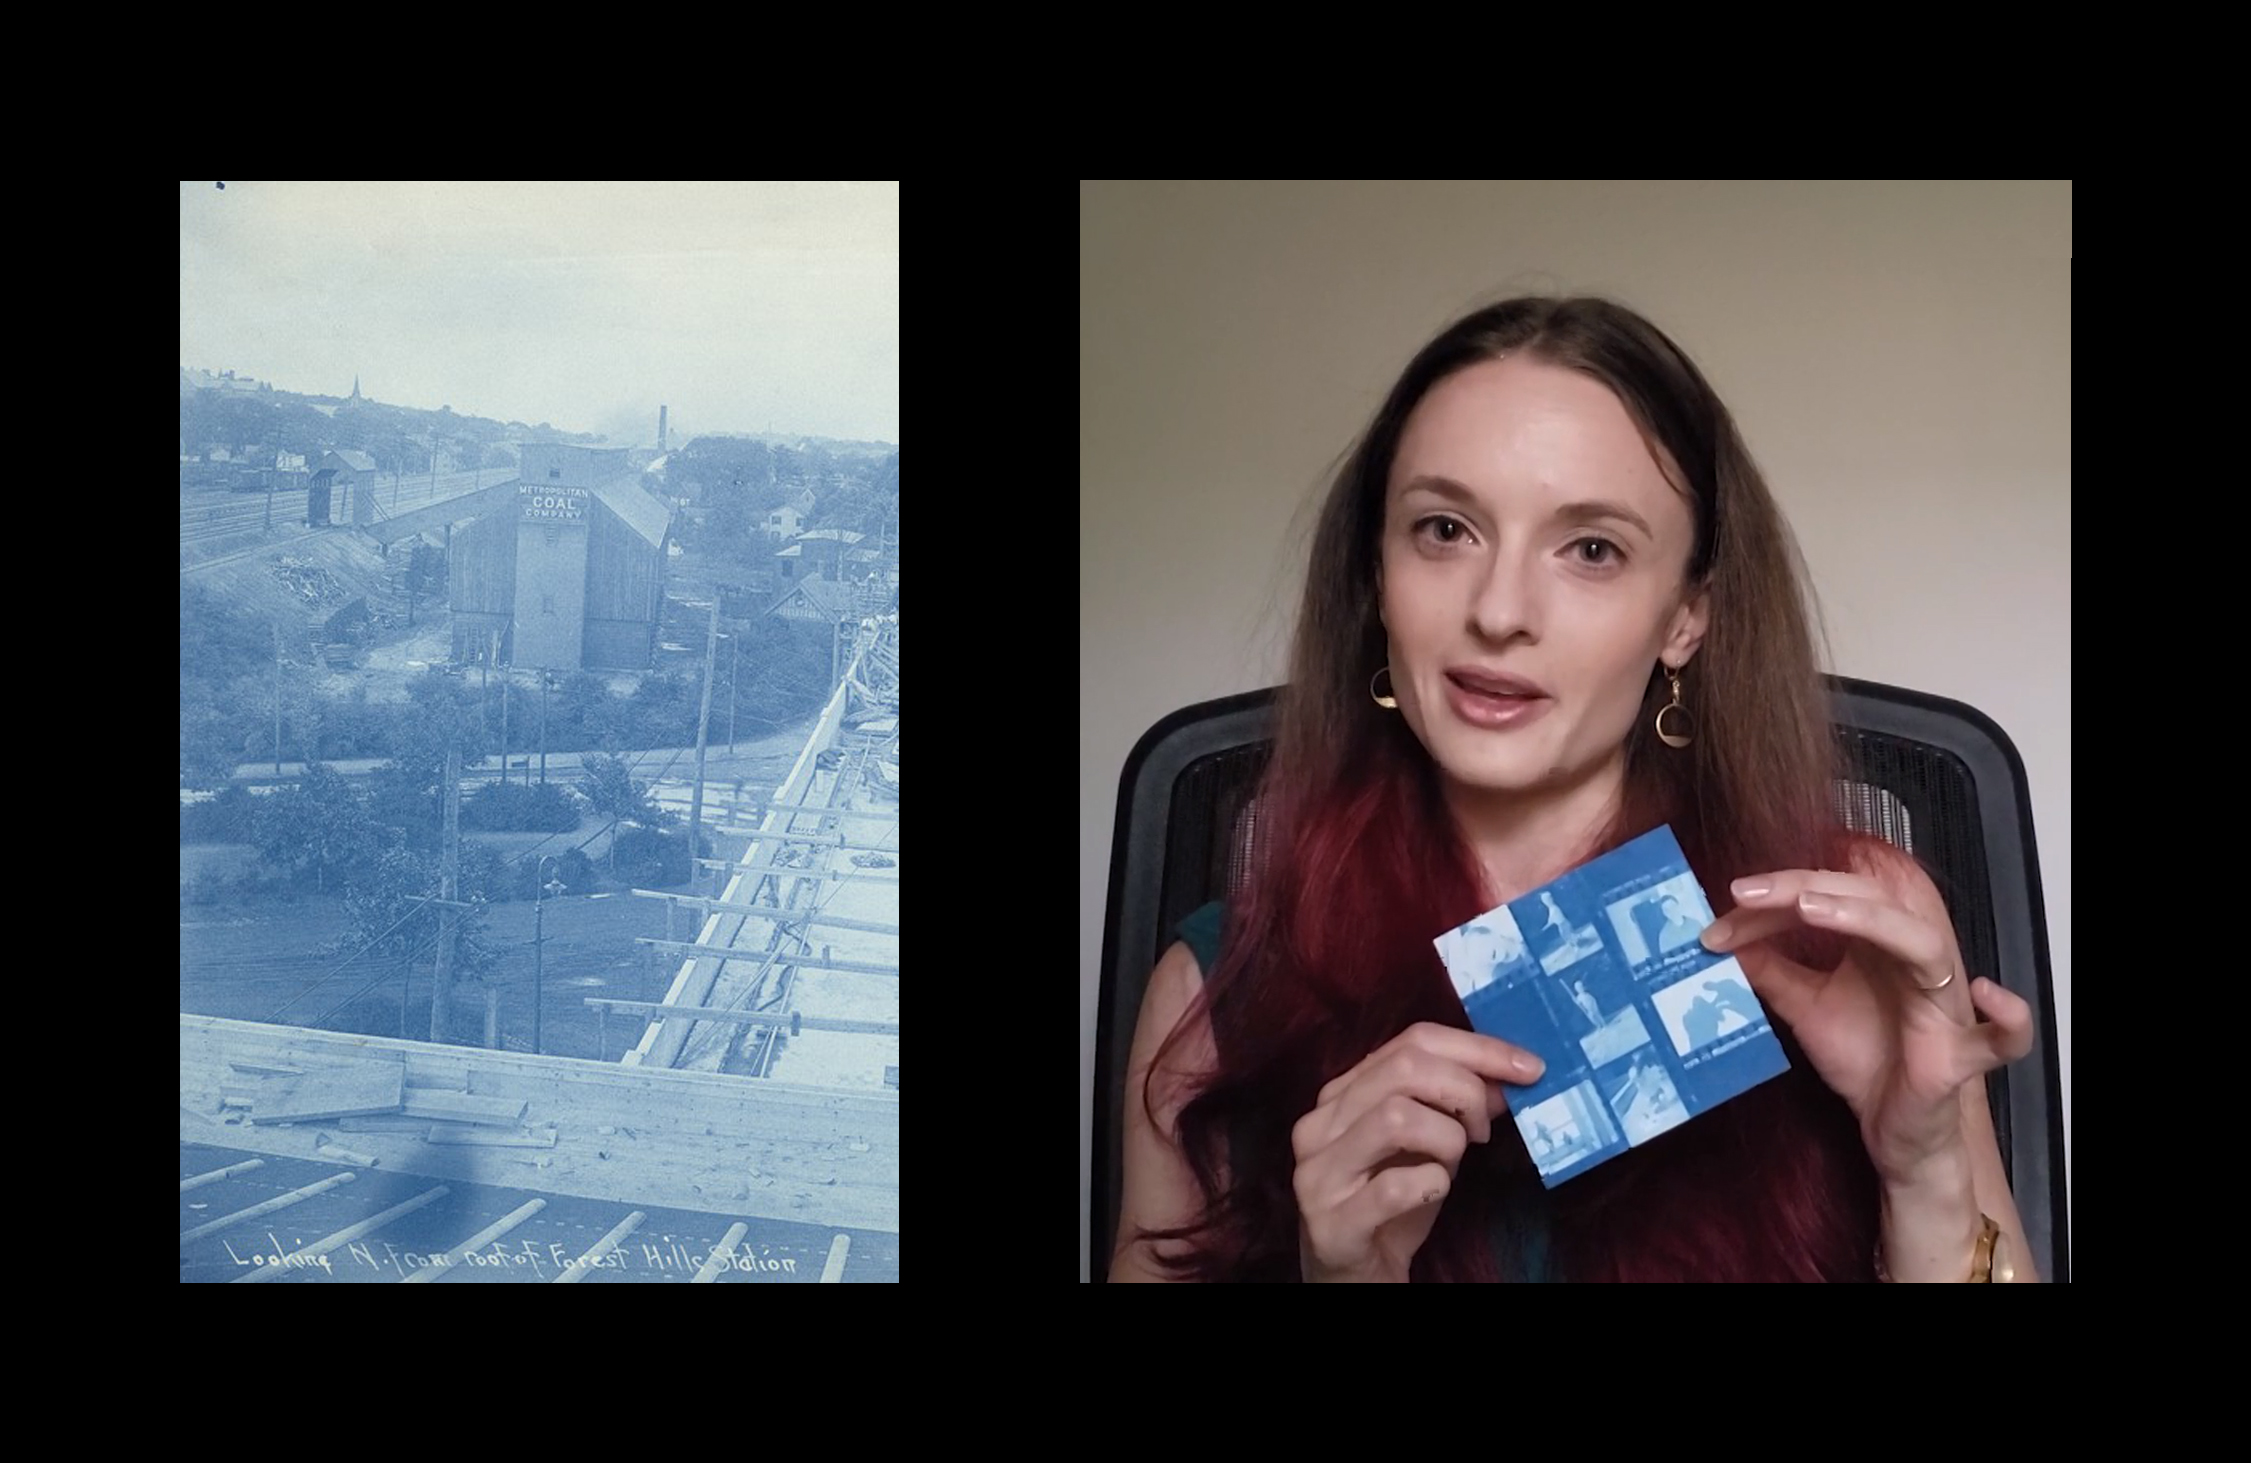 On the left, a blue photographic image shows a raised subway platform under construction. On the right, an image shows a woman holding a blue square cyanotype print featuring a collage of photographic negatives of people.